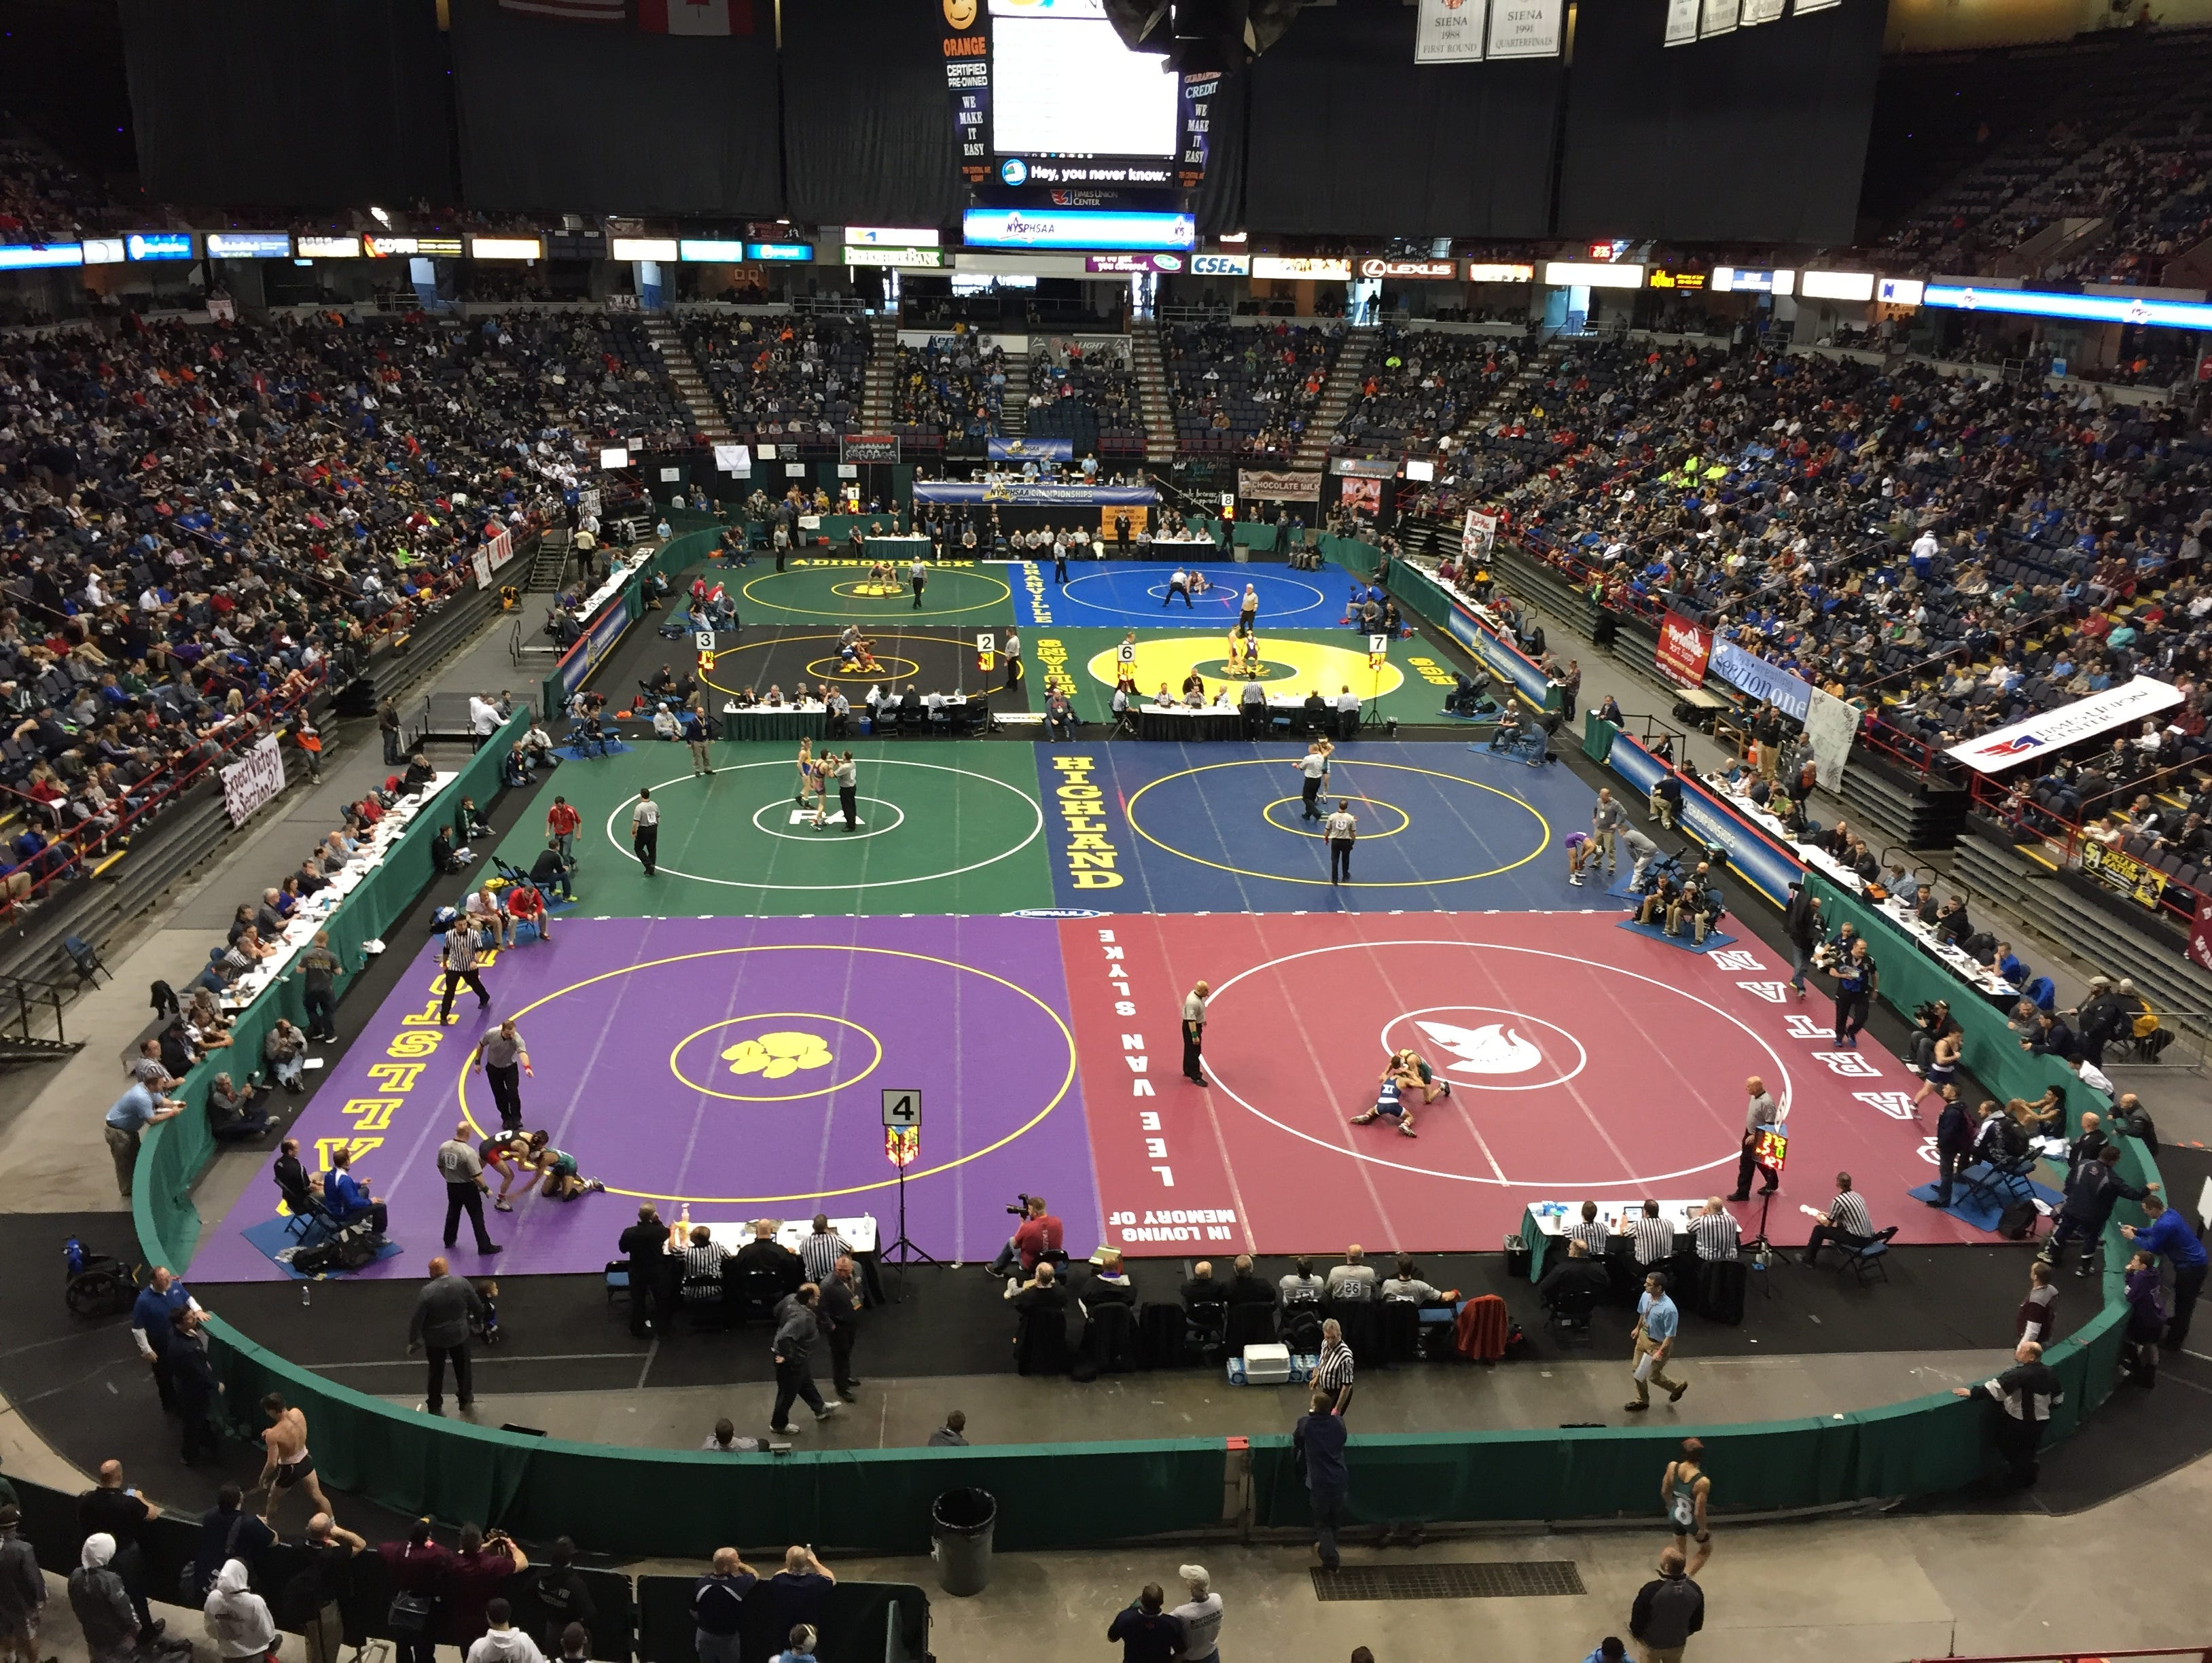 NYSPHSAA wrestling championships at the Times Union Center in Albany on Feb. 26, 2016.